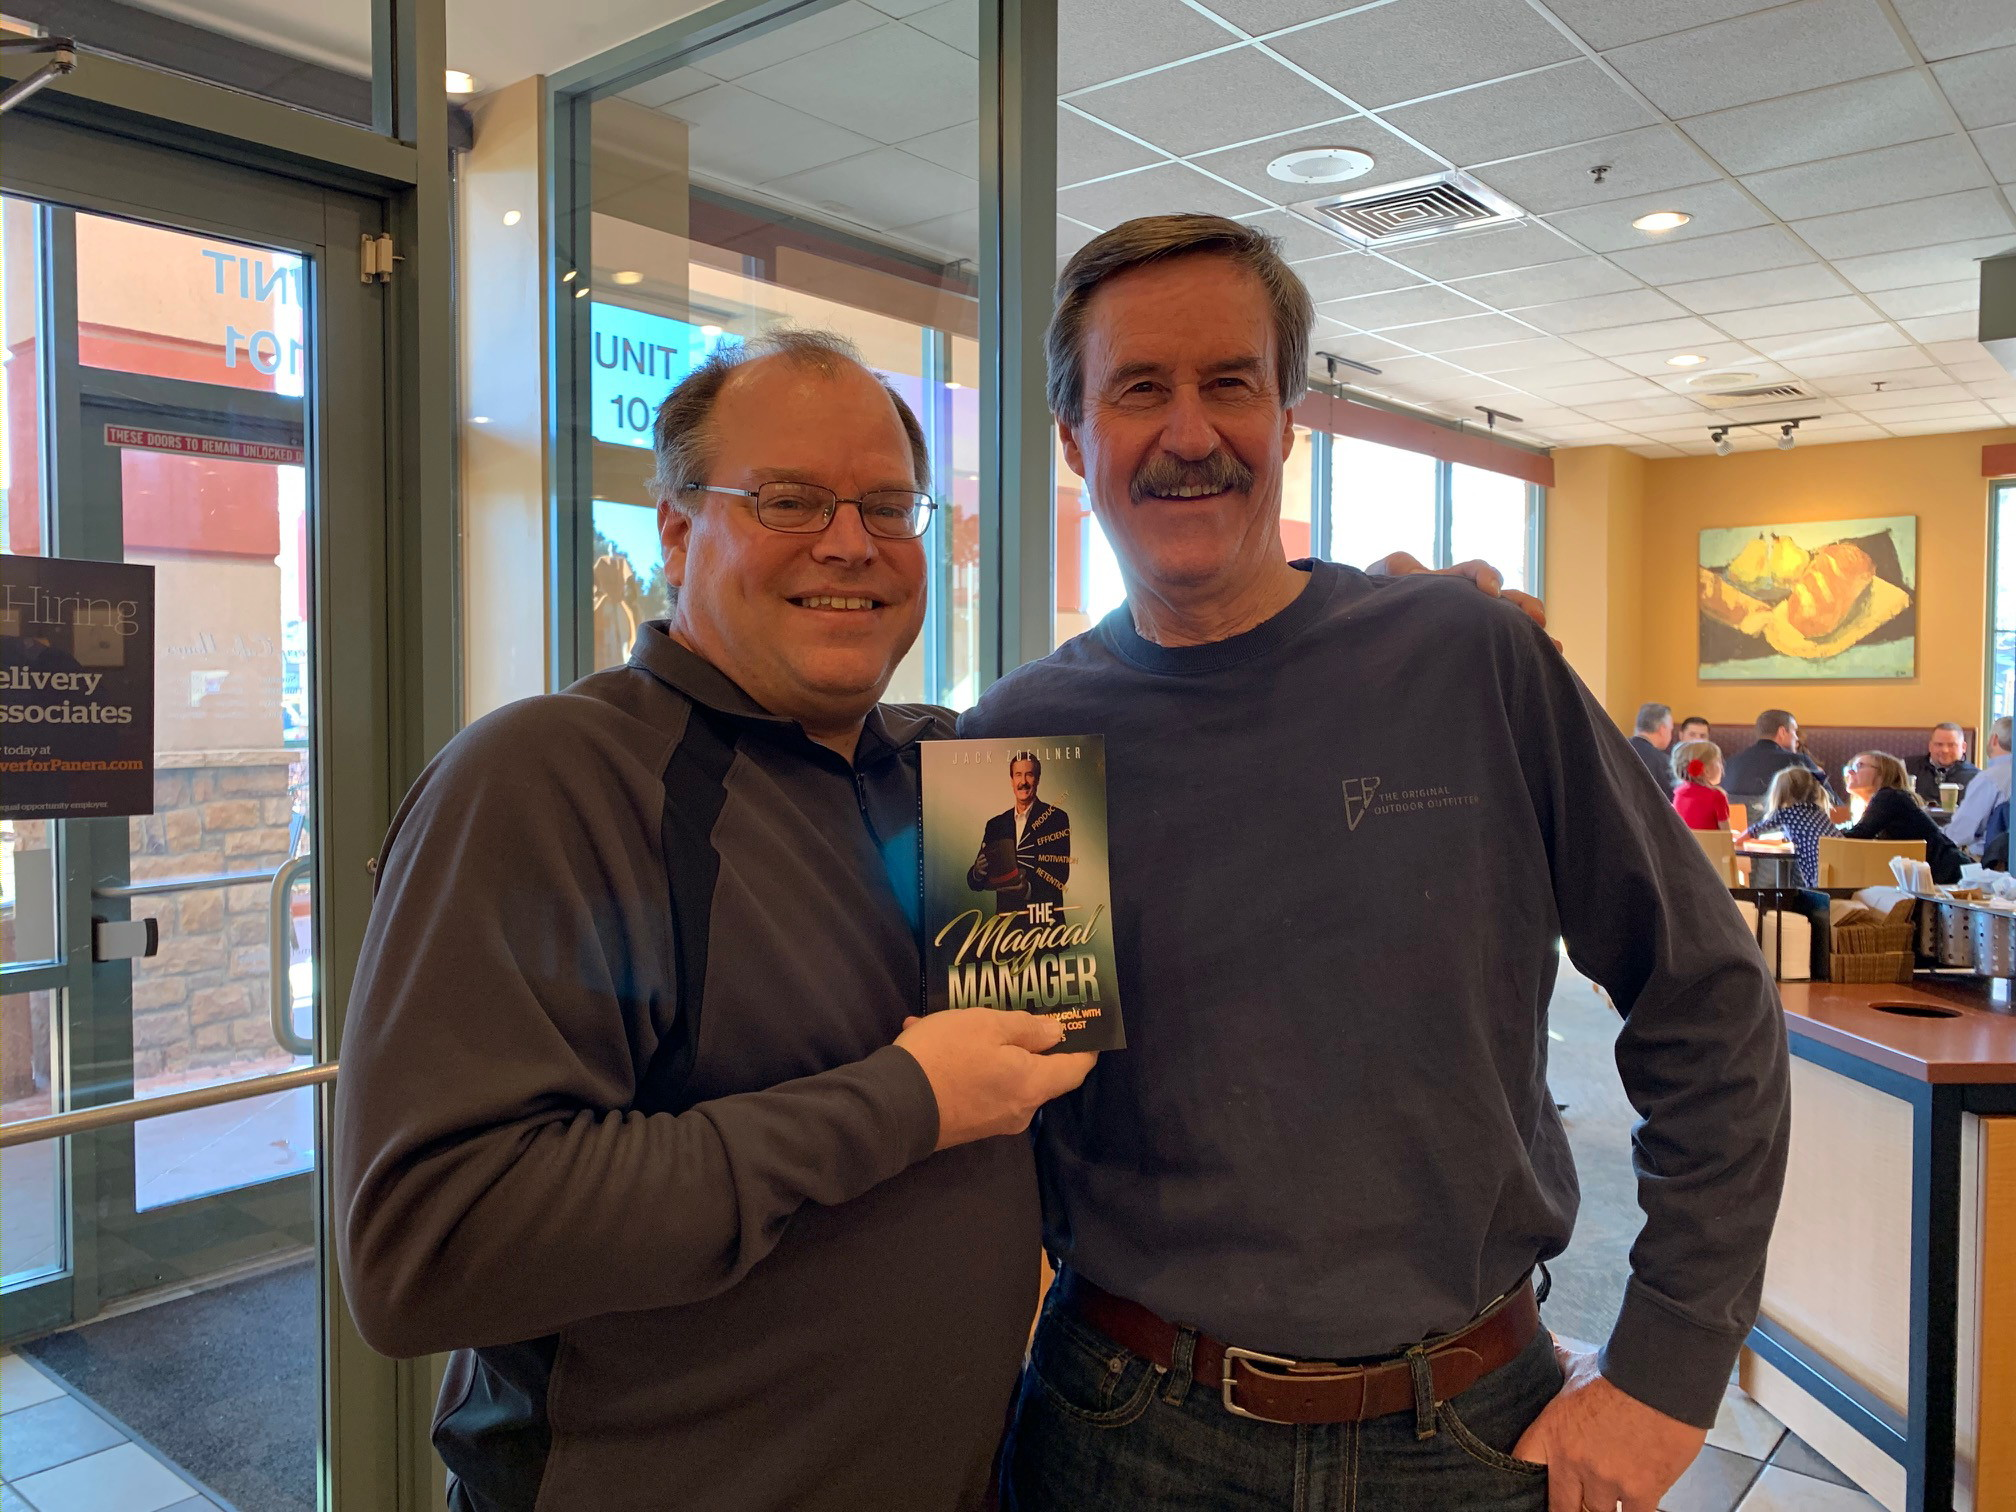 Marty Dickinson with author of The Magical Manager book, Jack Zoellner the relational leadership speaker